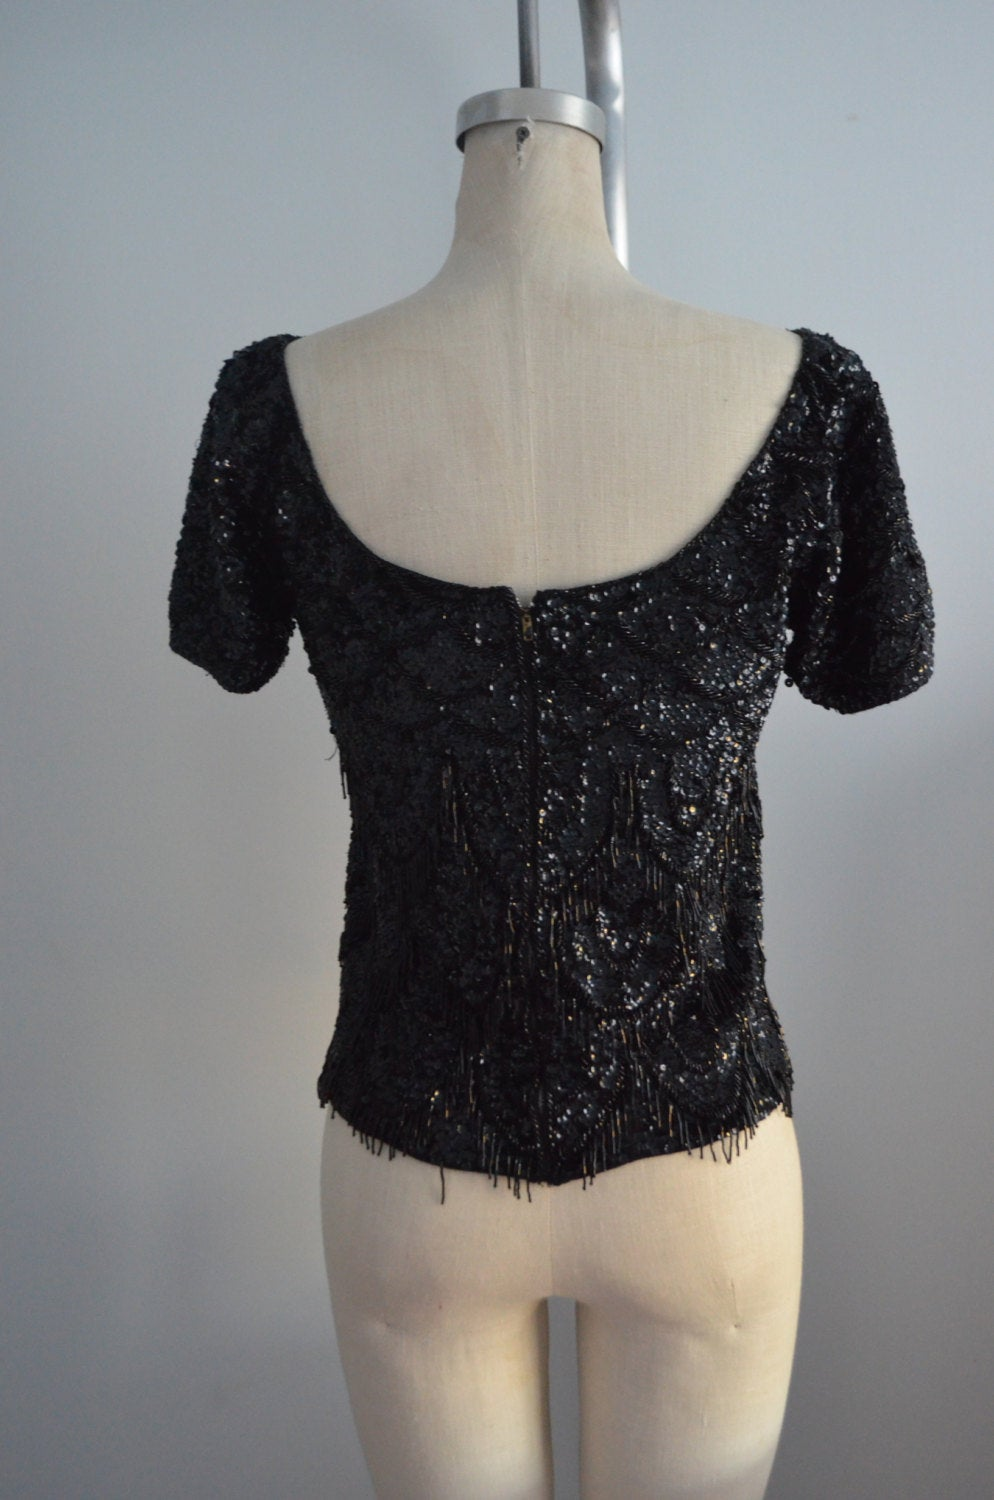 1960S Jo Ro Imports Black Sequined Beaded Fringe Top Handicraft Cropped Size M